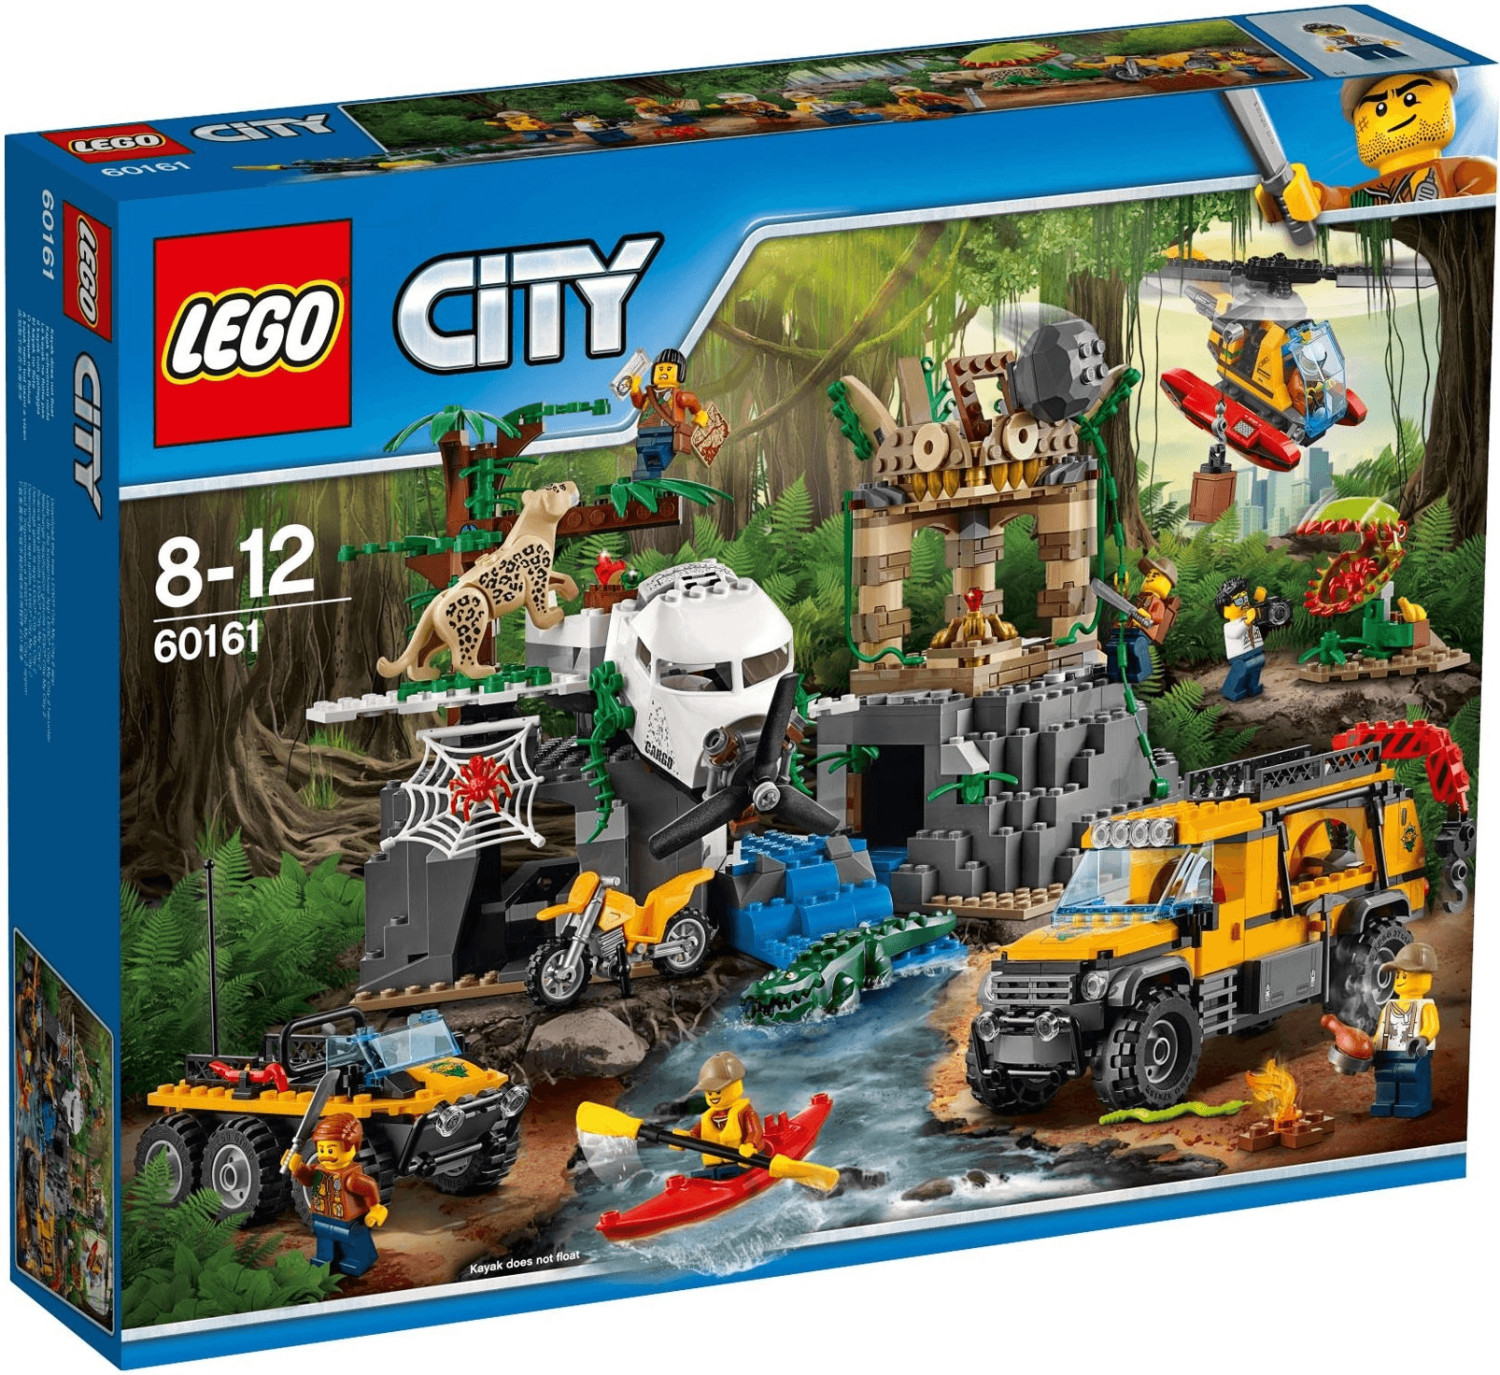 LEGO City - Le site d'exploration de la jungle (60161)